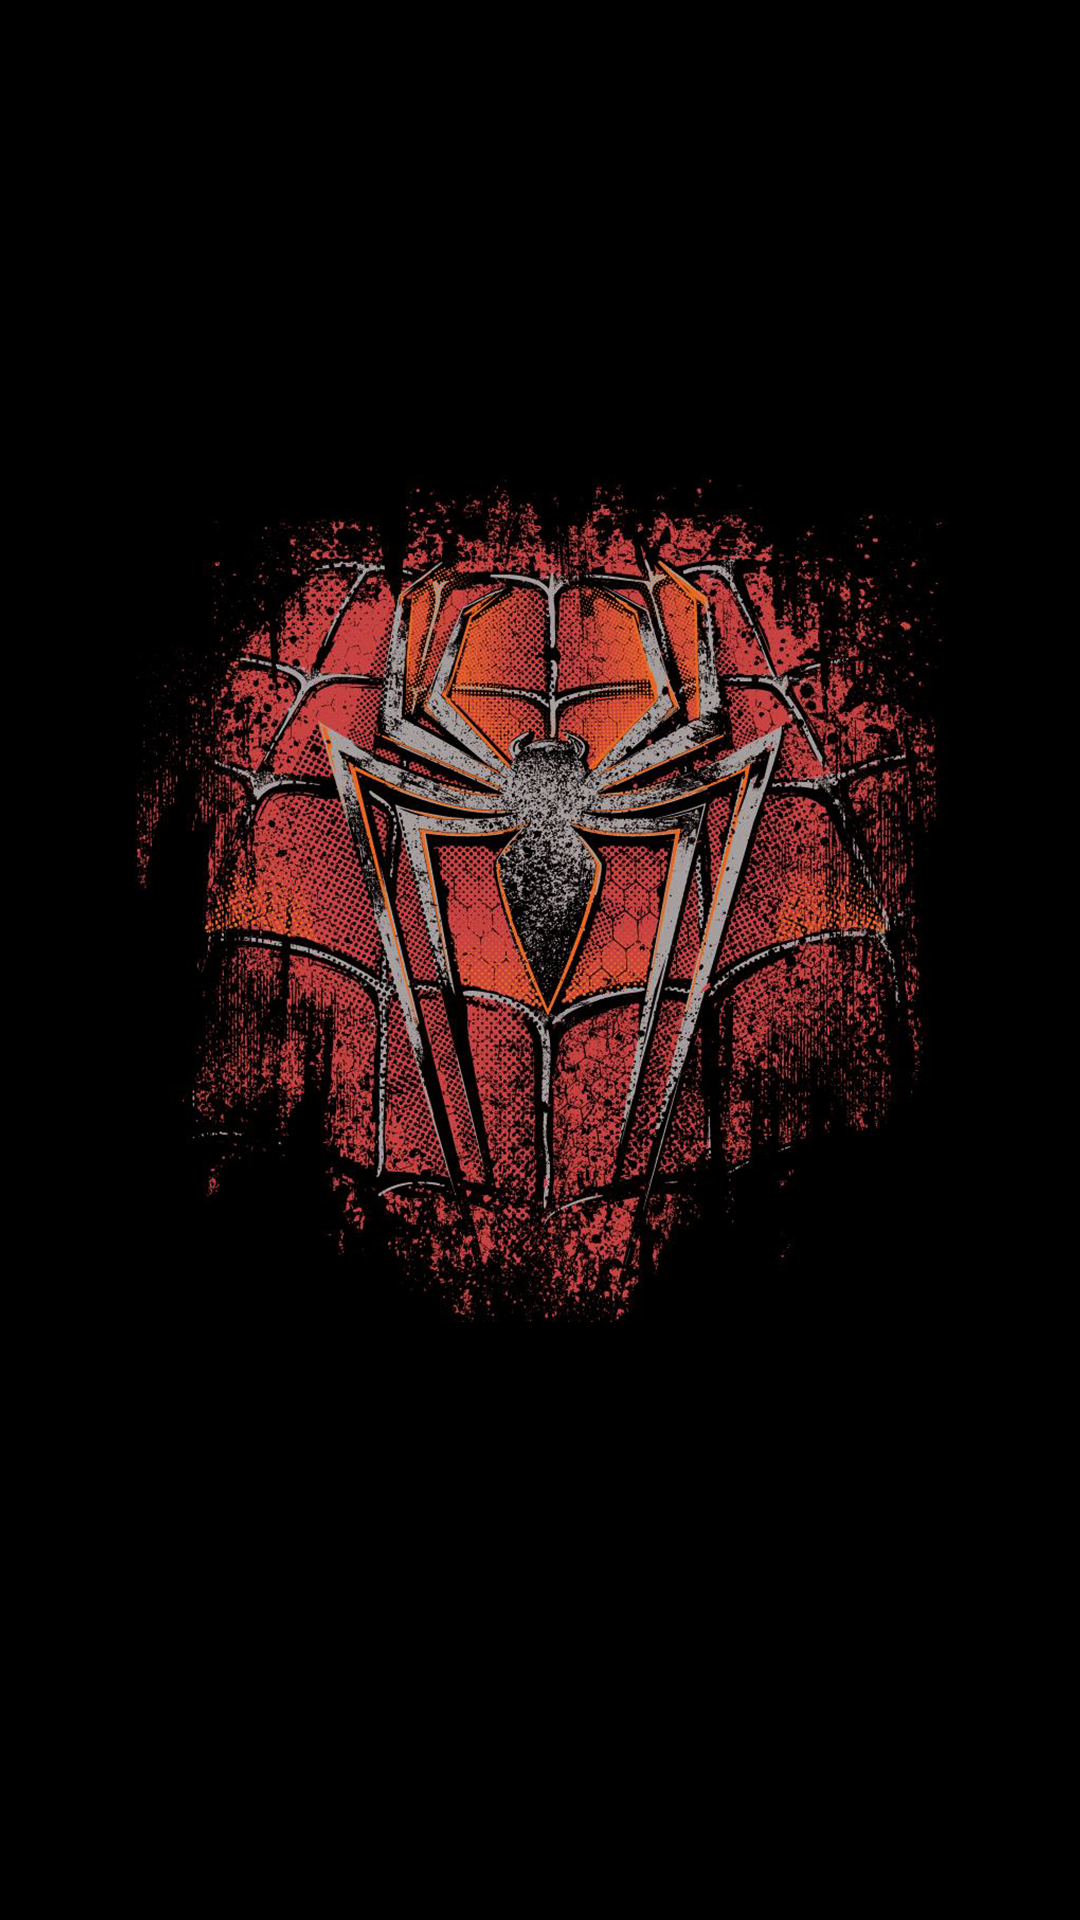 Spiderman Logo Minimal Artwork Wallpaper   Android Wallpapers 1080x1920